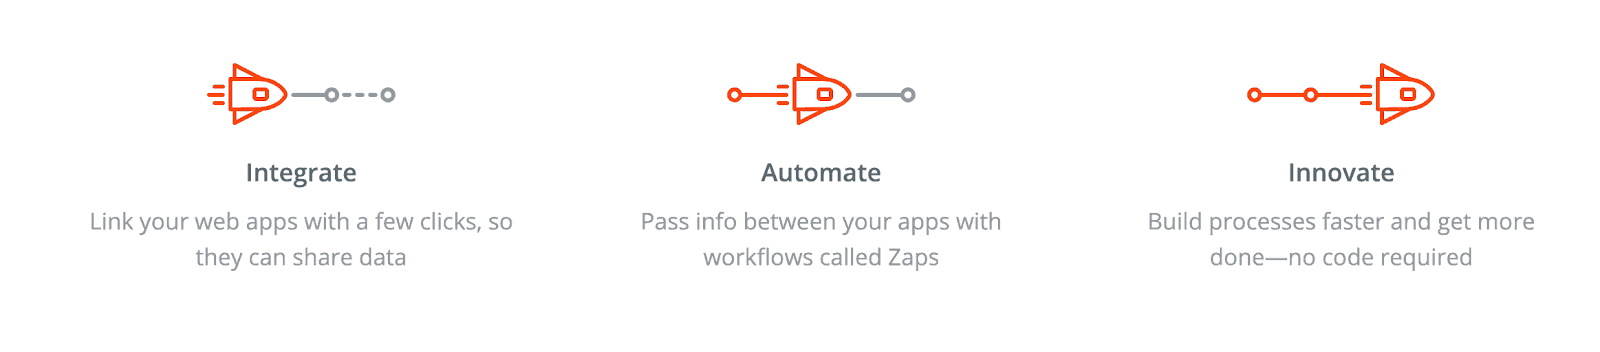 Zapier is one of the best ecommerce tools that integrates, automates and innovates